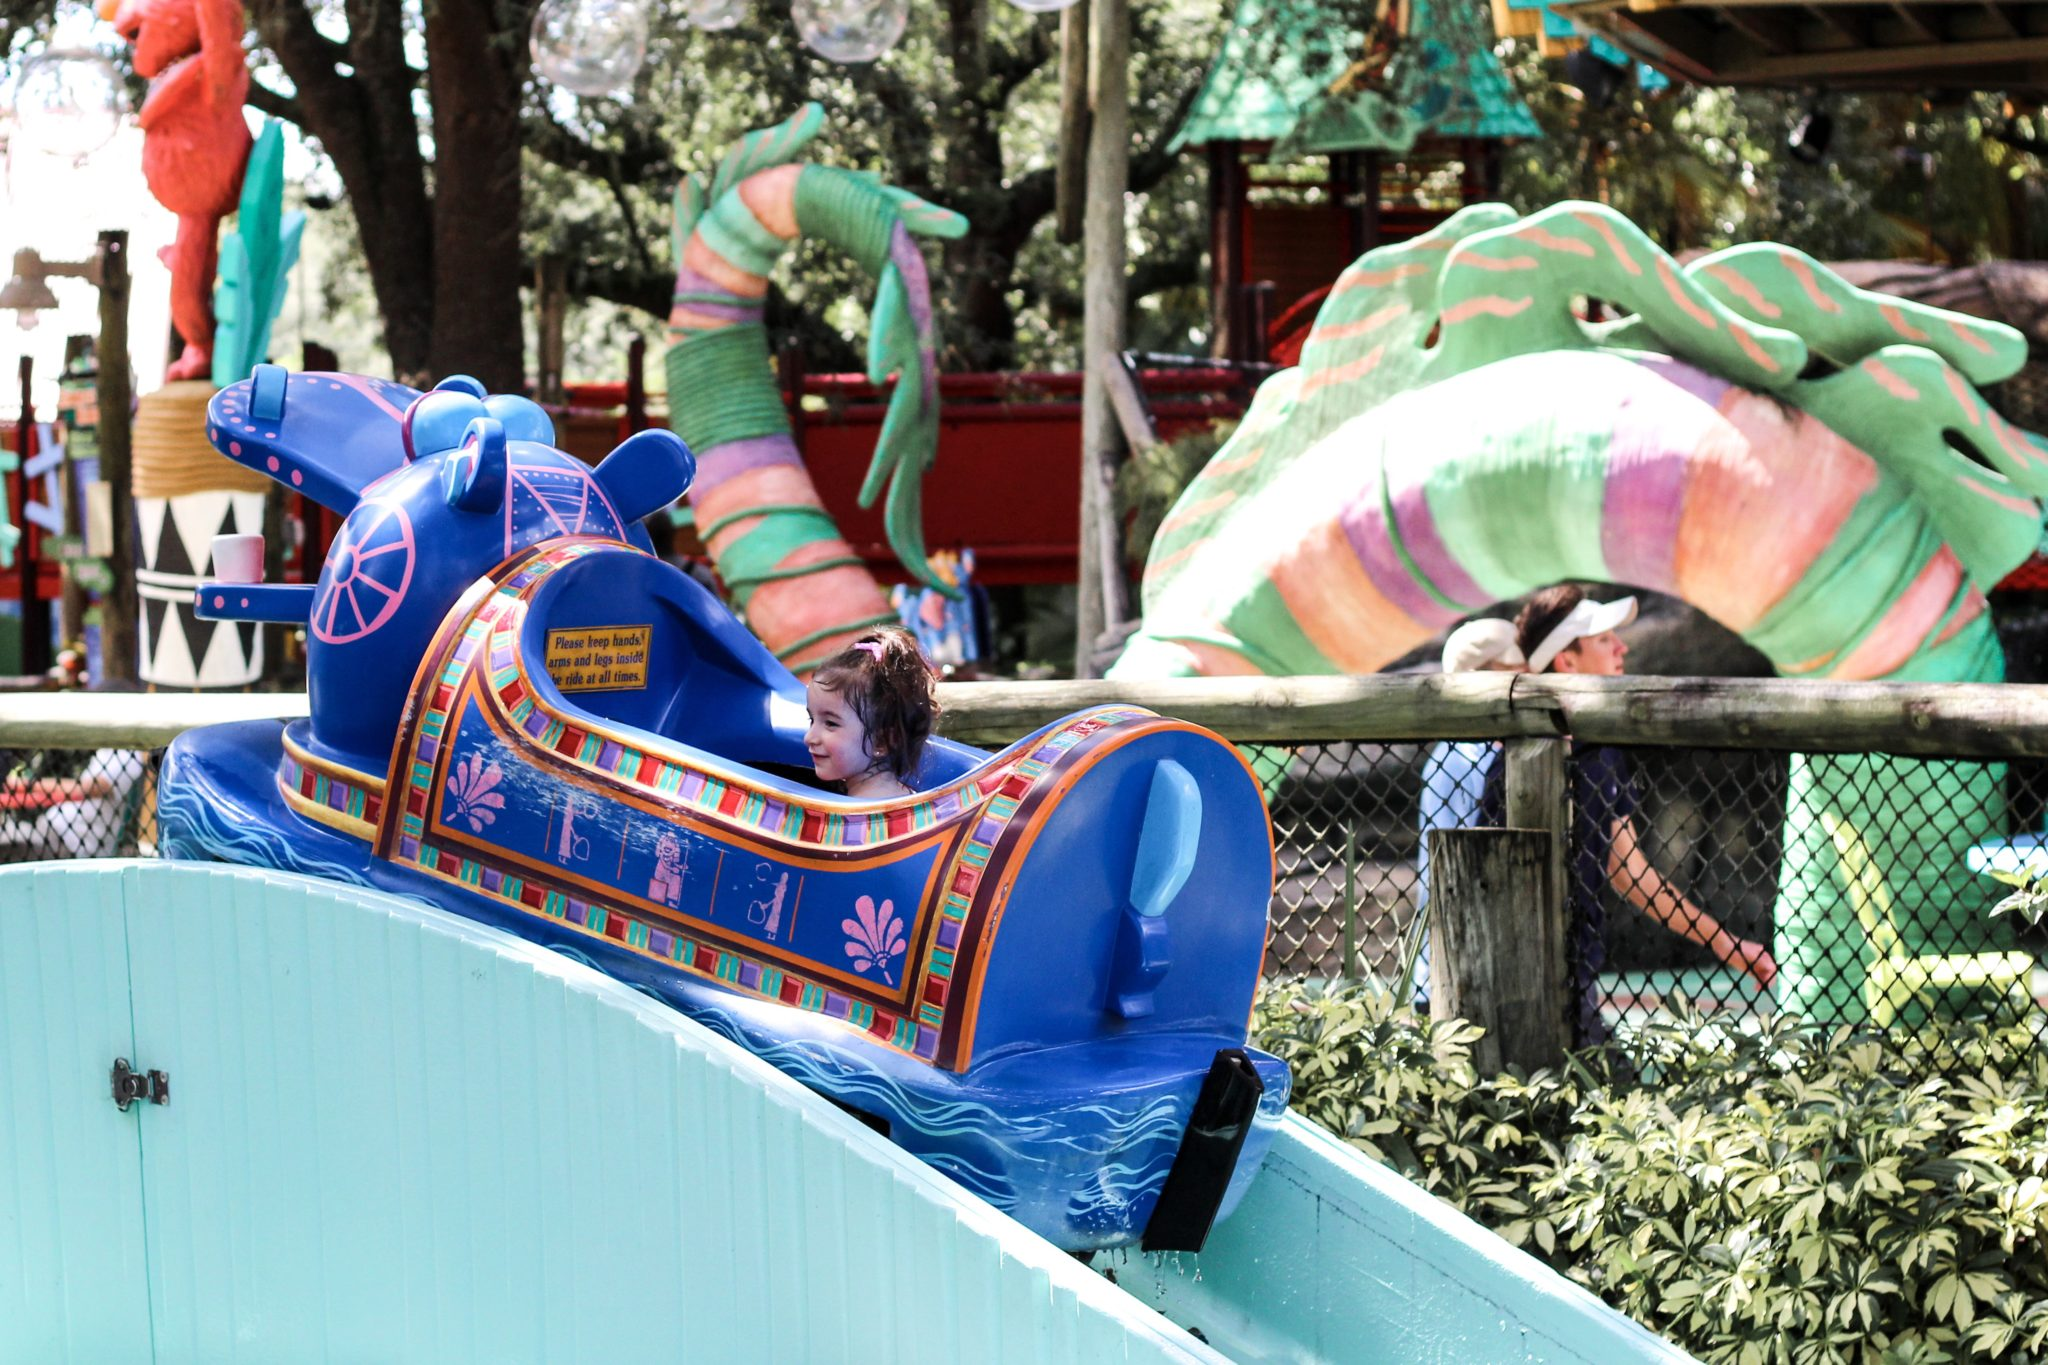 Taking toddlers to Busch Gardens Tampa, activities for toddlers, things to do with preschoolers, Tampa Bay attractions and theme parks